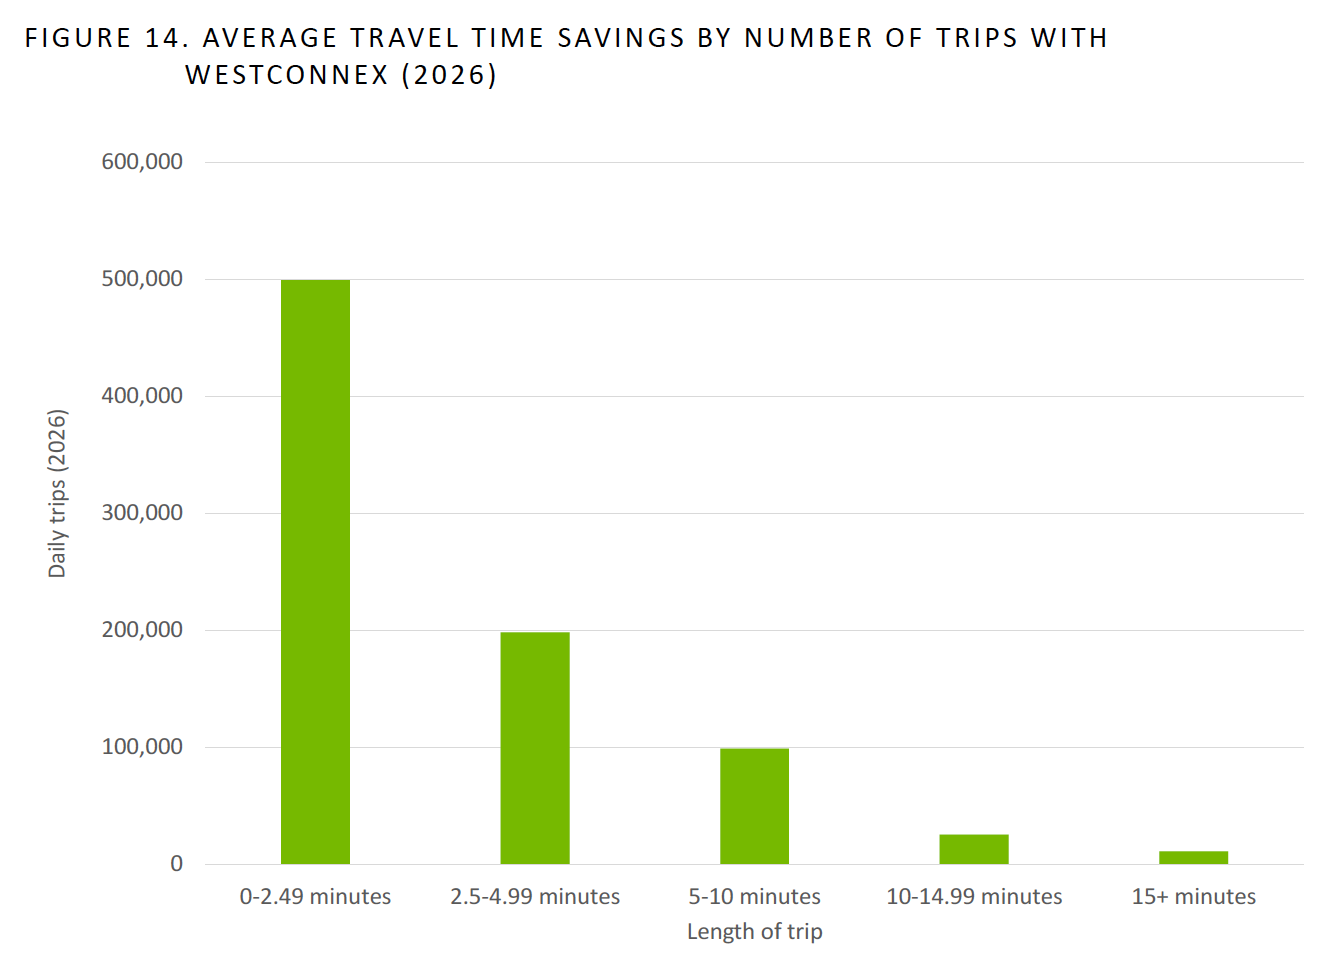 WestCONnex travel time savings